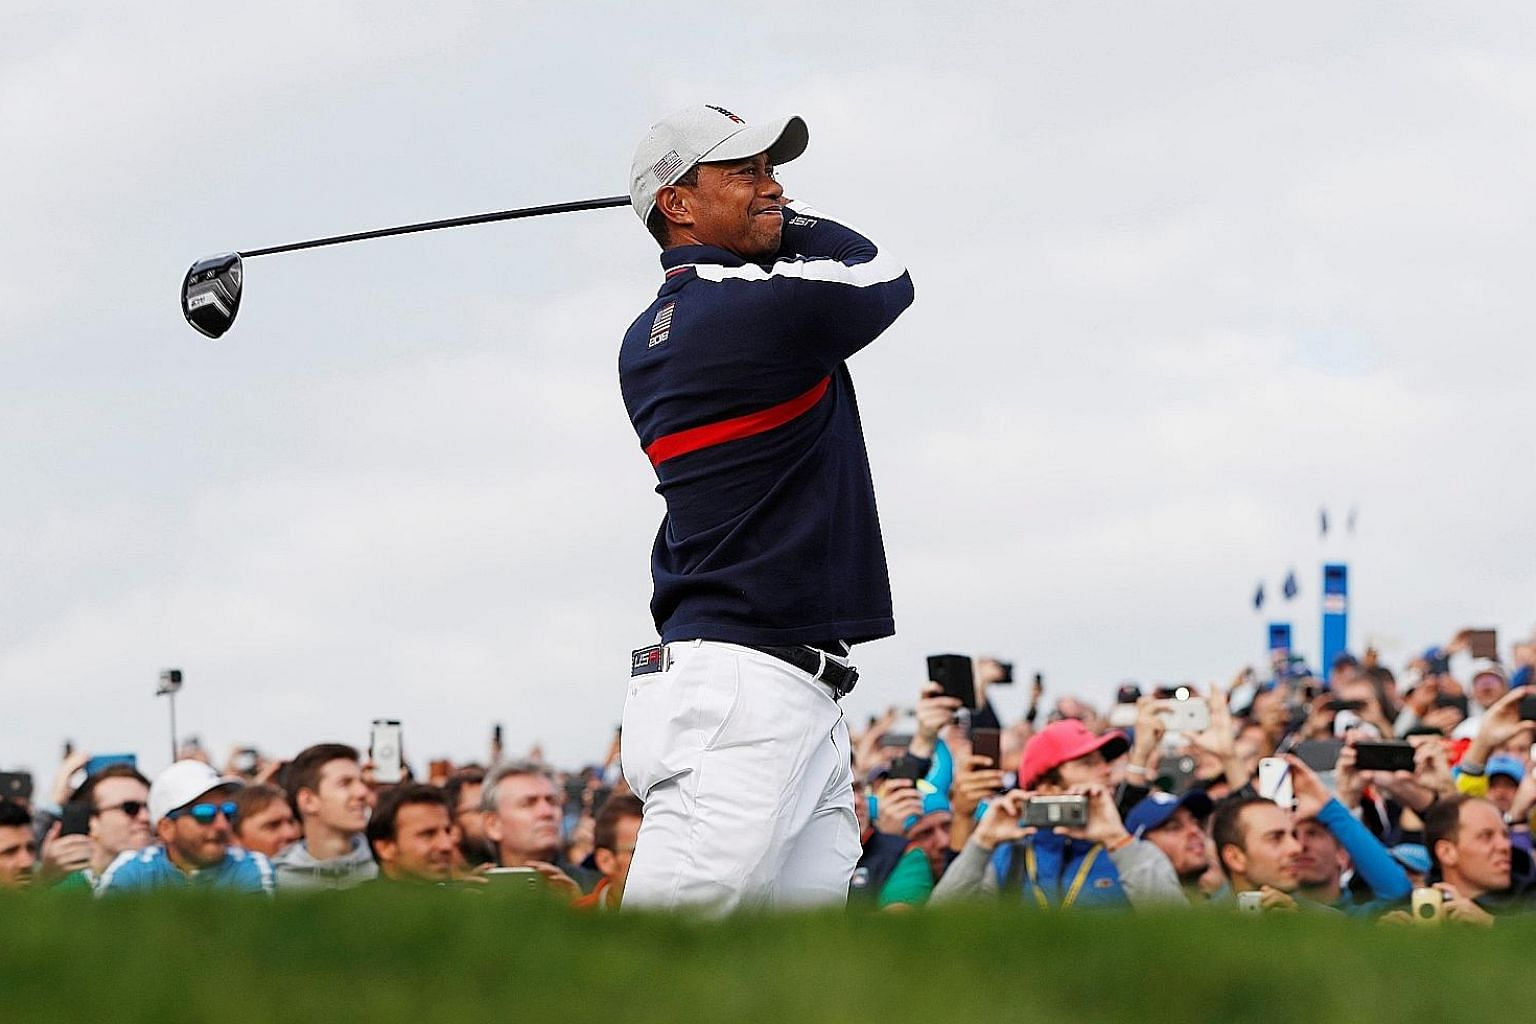 Tiger Woods was paired with Patrick Reed during the opening Ryder Cup four-ball matches at Le Golf National in Paris yesterday. Their loss was the only blot on a fine morning for the Americans, who are defending their title but have not won in Europe